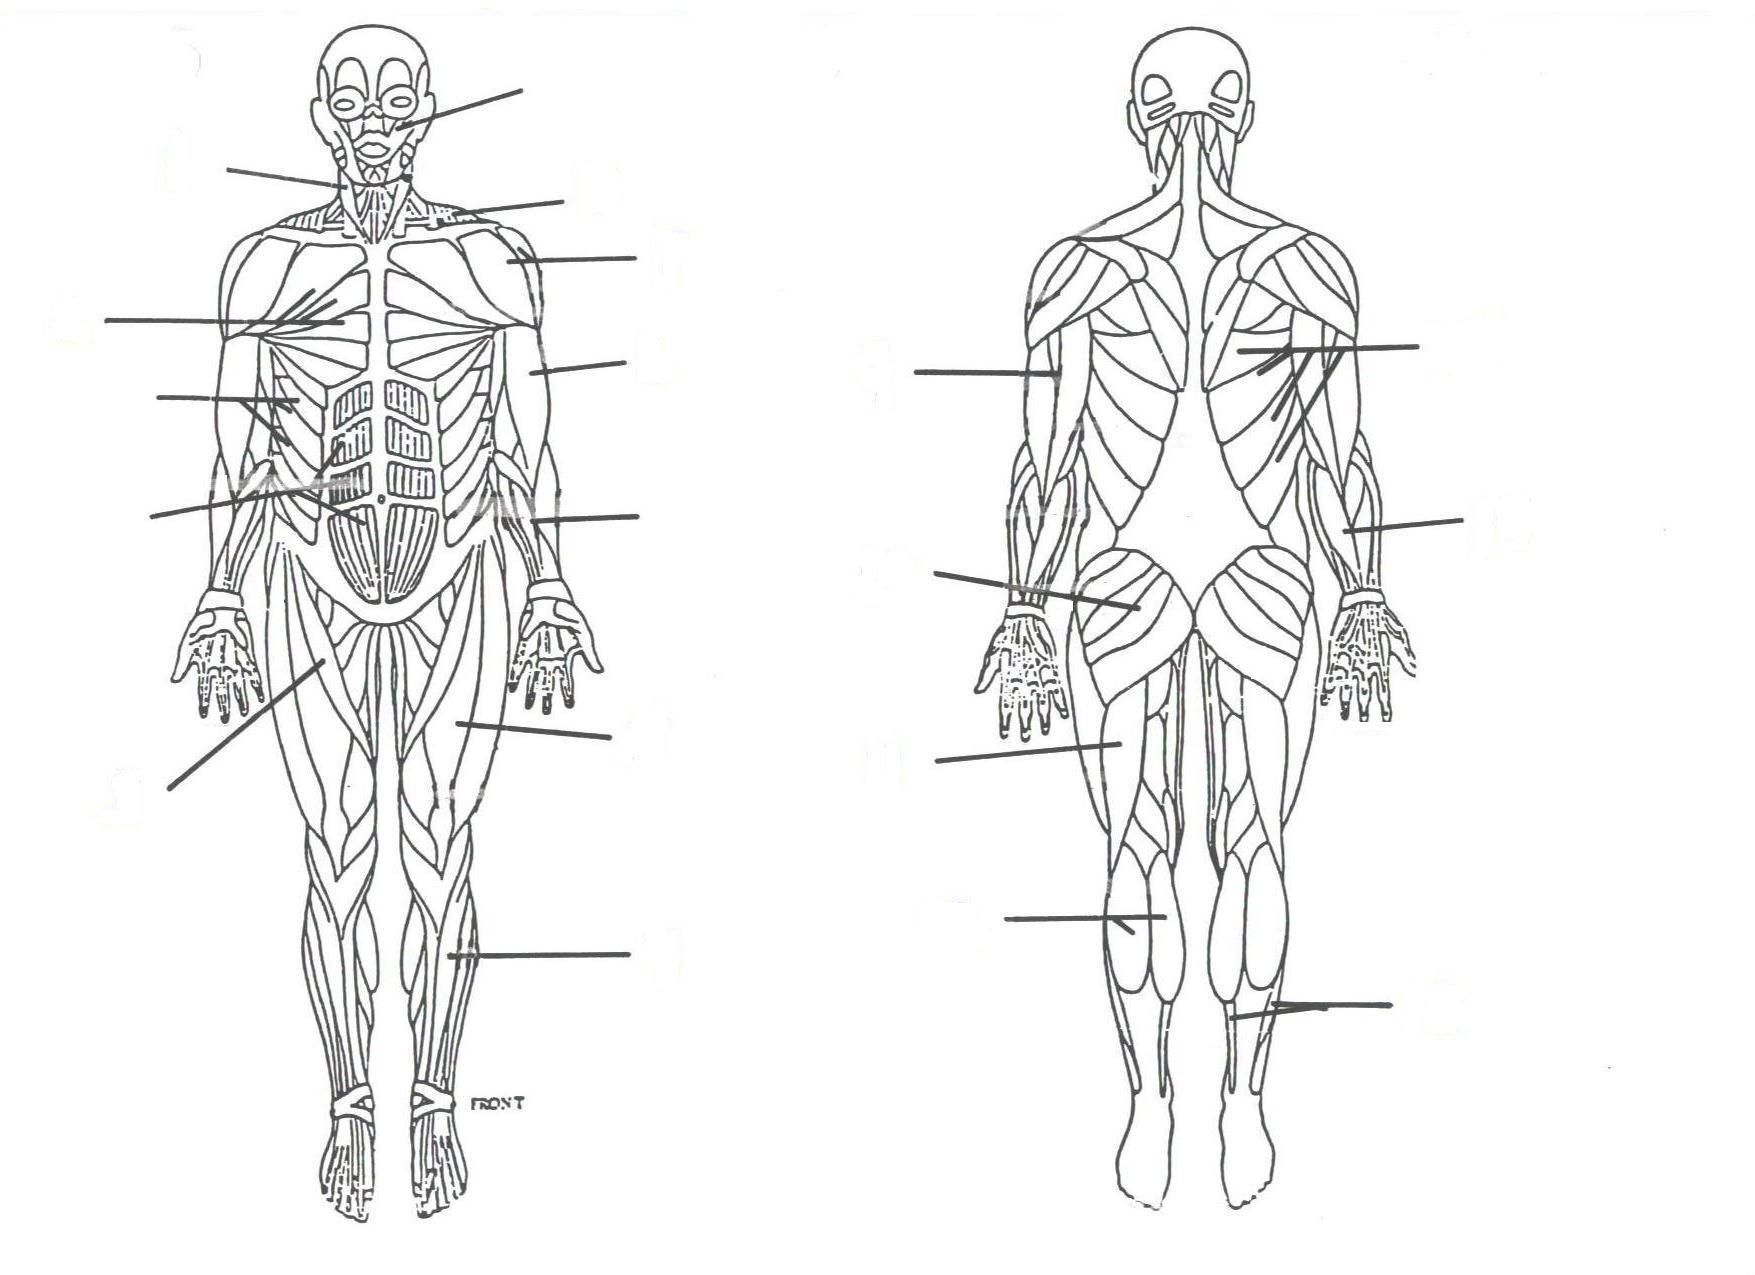 hight resolution of 1755x1275 muscular system without labels human anatomy study muscle muscular system drawing